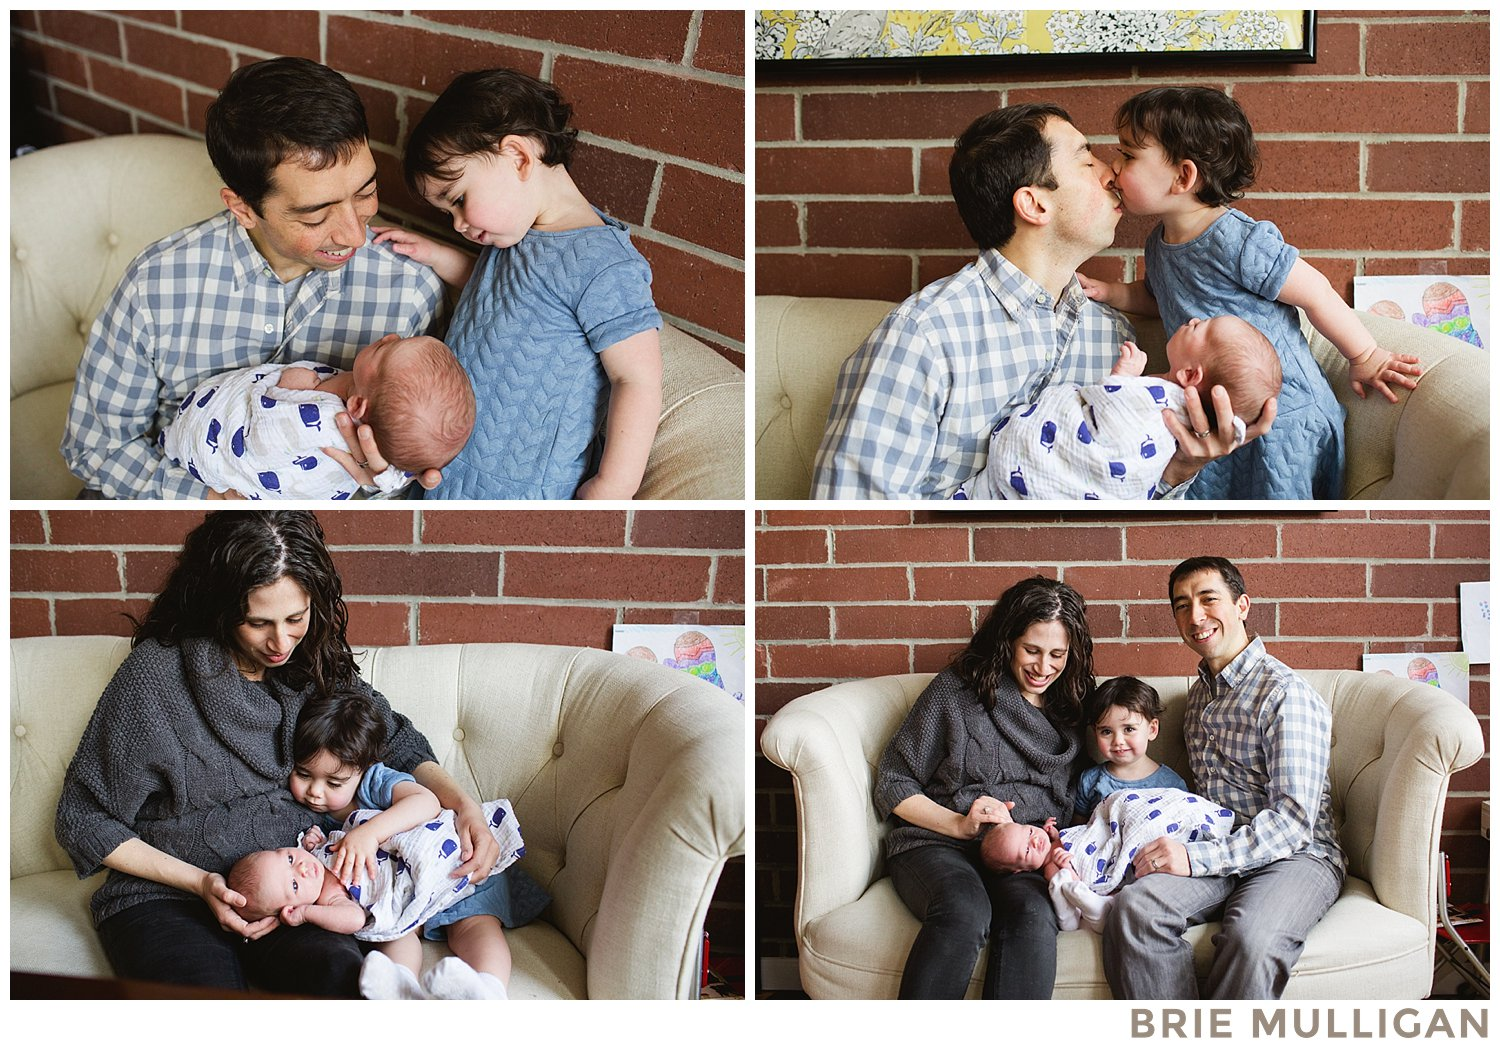 Brie-Mulligan-Family-and-Newborn-Photographer-Montclair-New-Jersey-Northern-NJ-Essex-County-and-NYC_0164.jpg